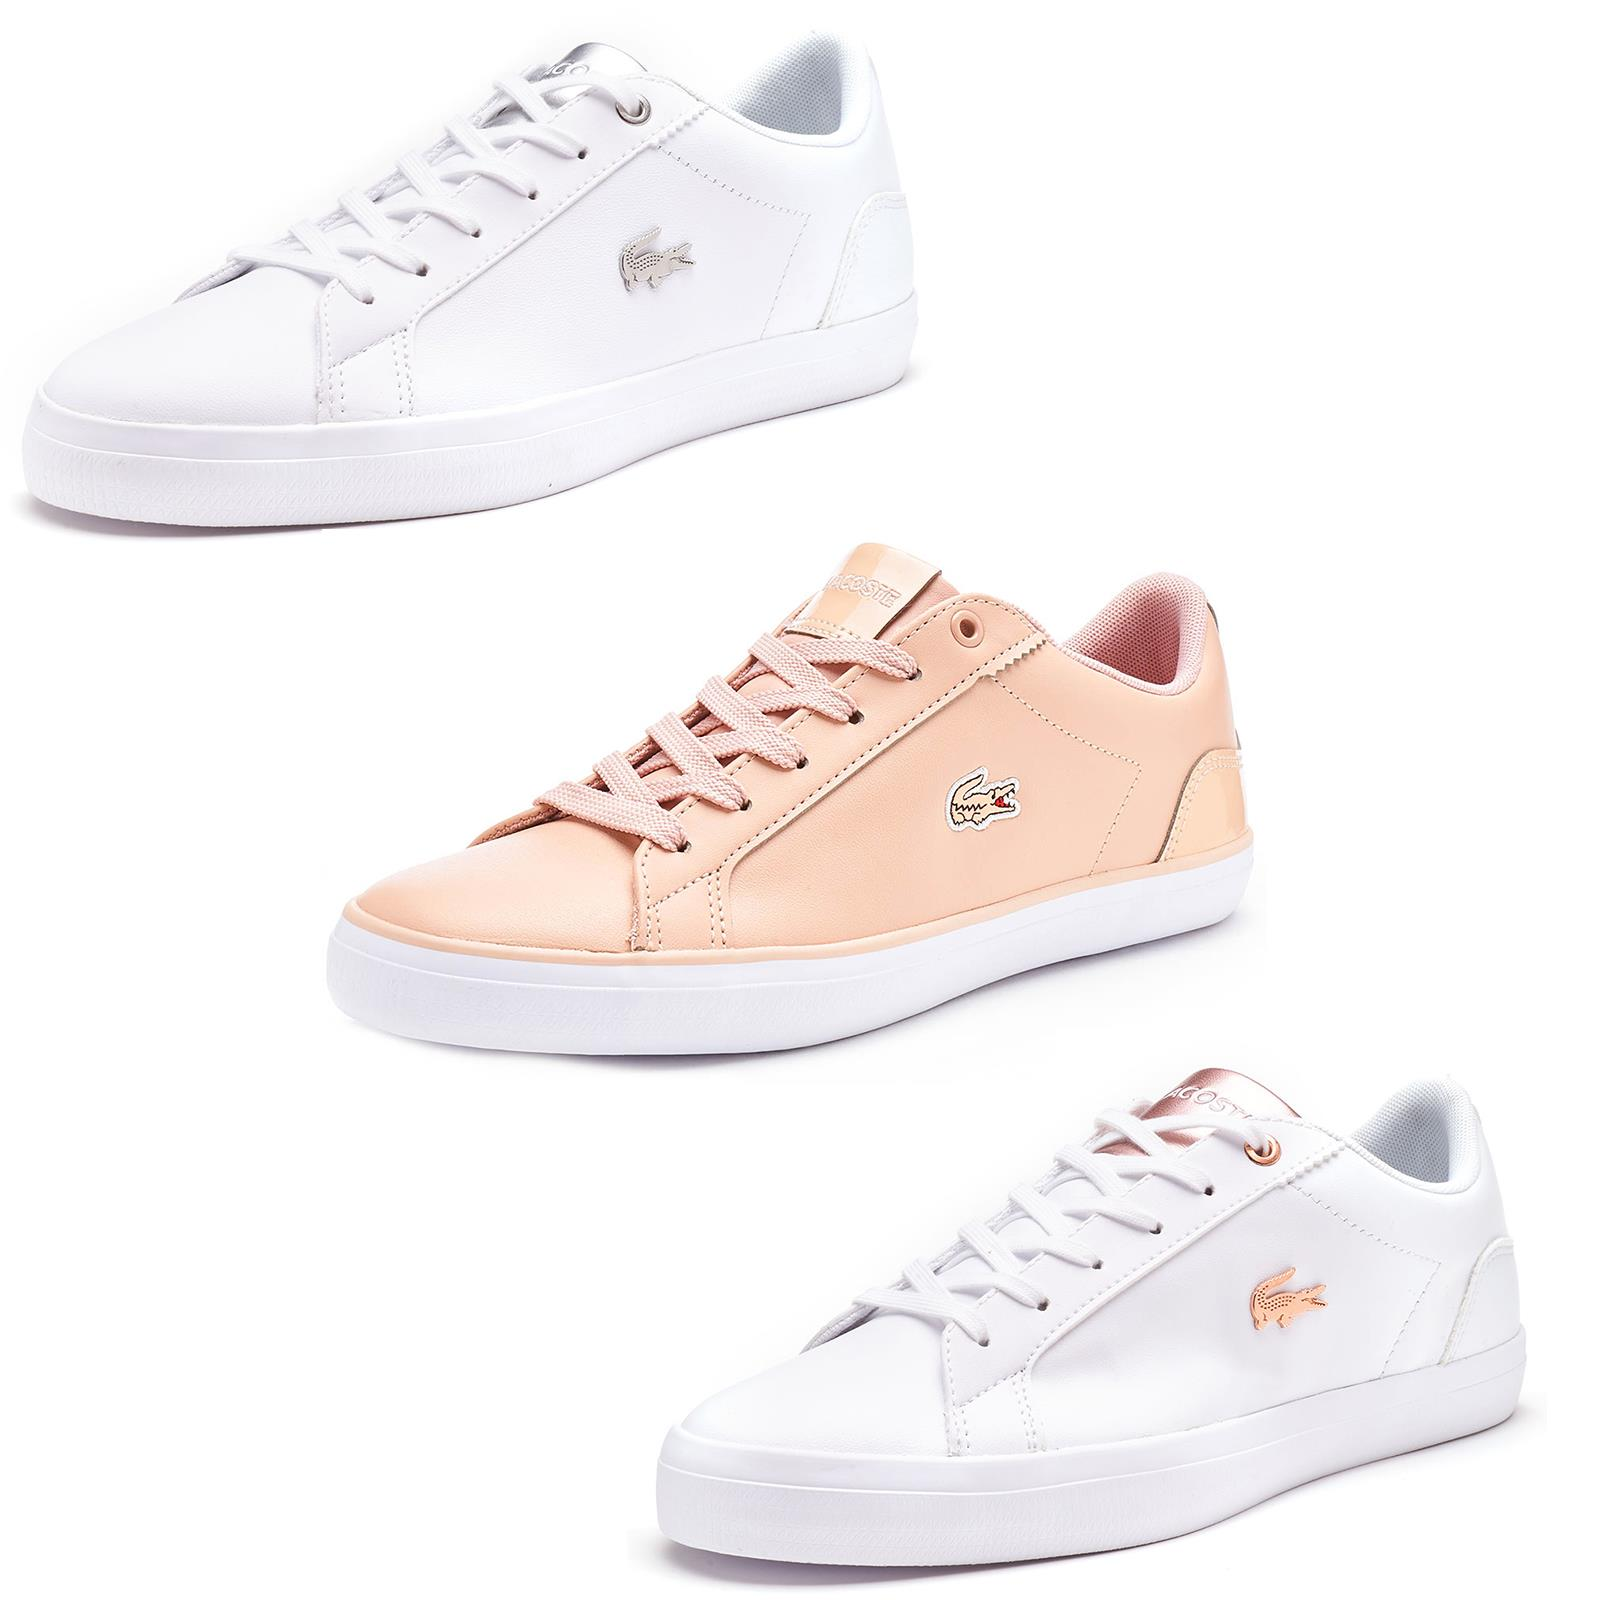 Lacoste Lerond 119 1 QSP Leather Lace Up Trainers in White & Silver & Rose Gold